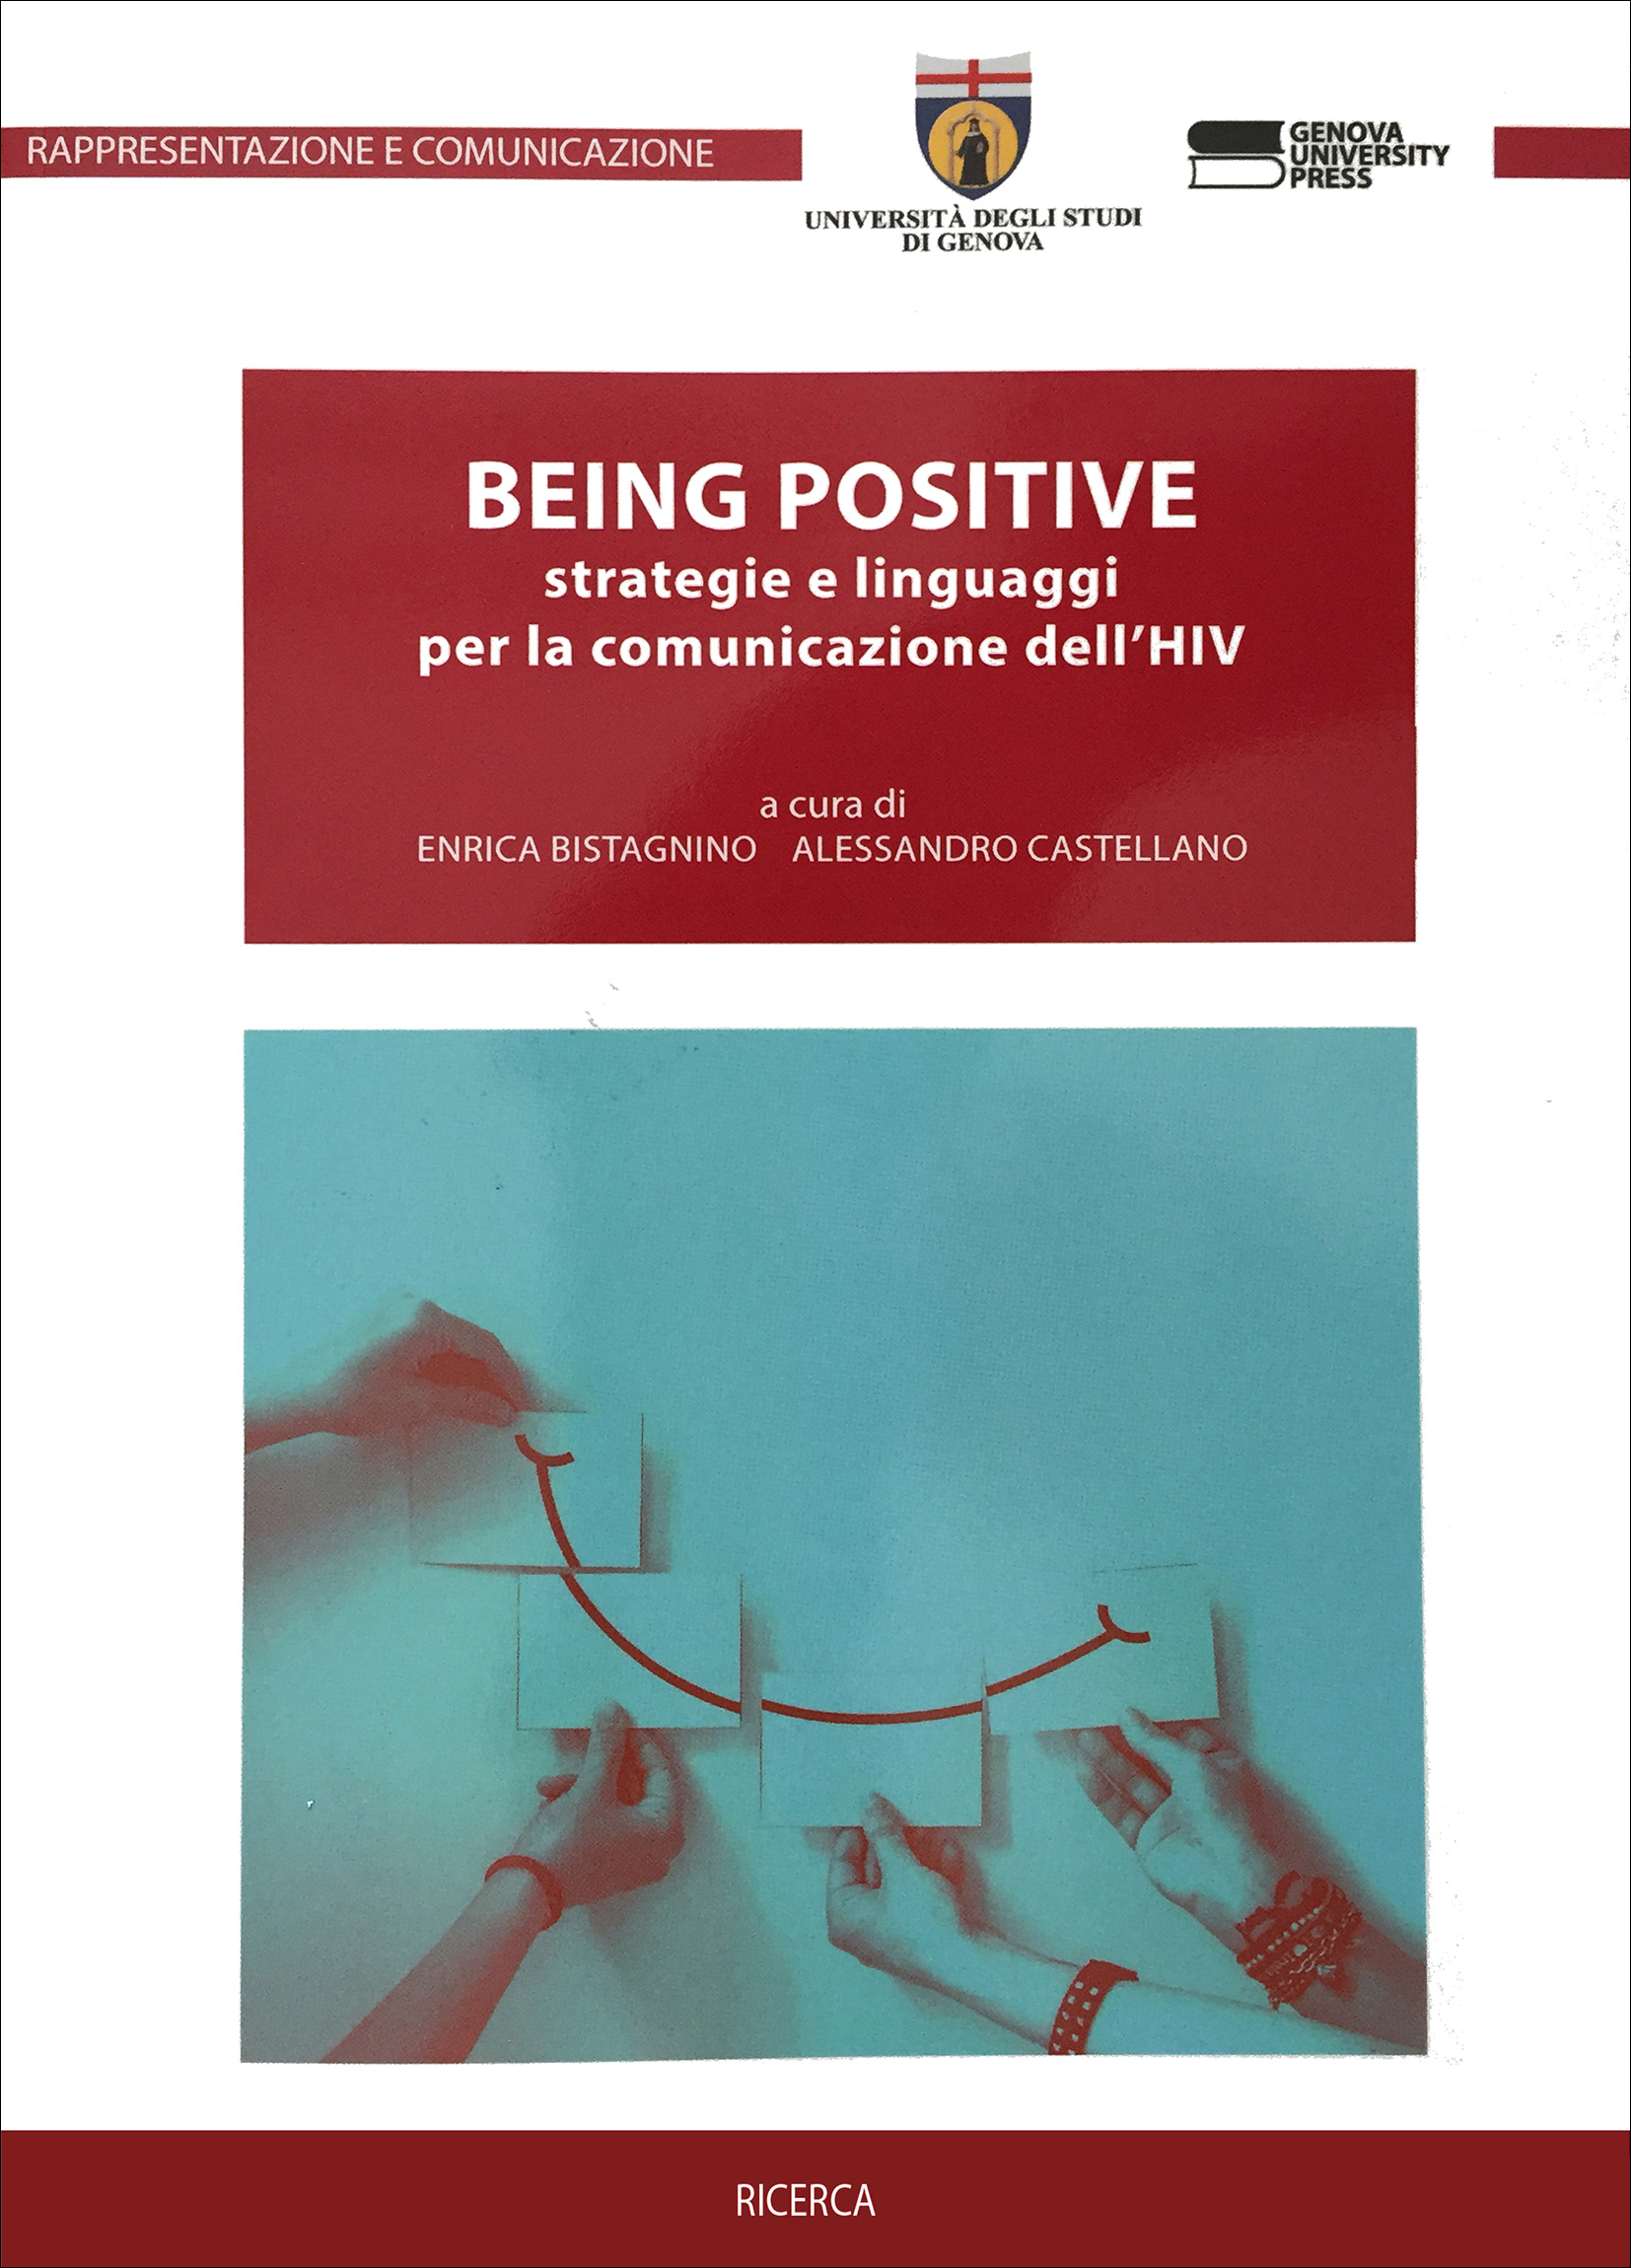 BEING POSITIVE strategie e linguaggi per la comunicazione dell'HIV